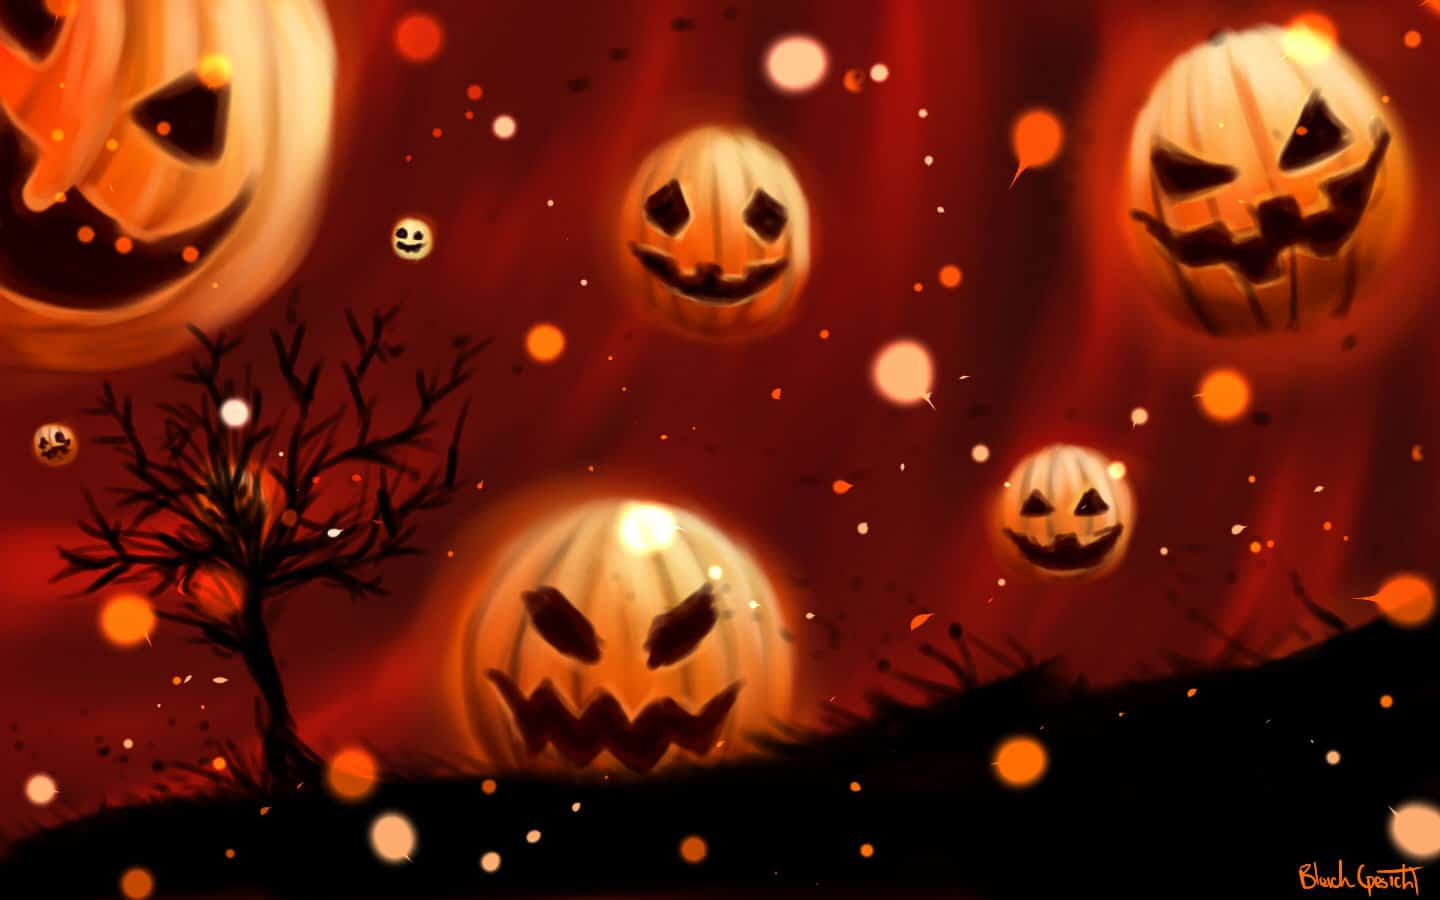 Cool Pumpkin Halloween Backgrounds Pics